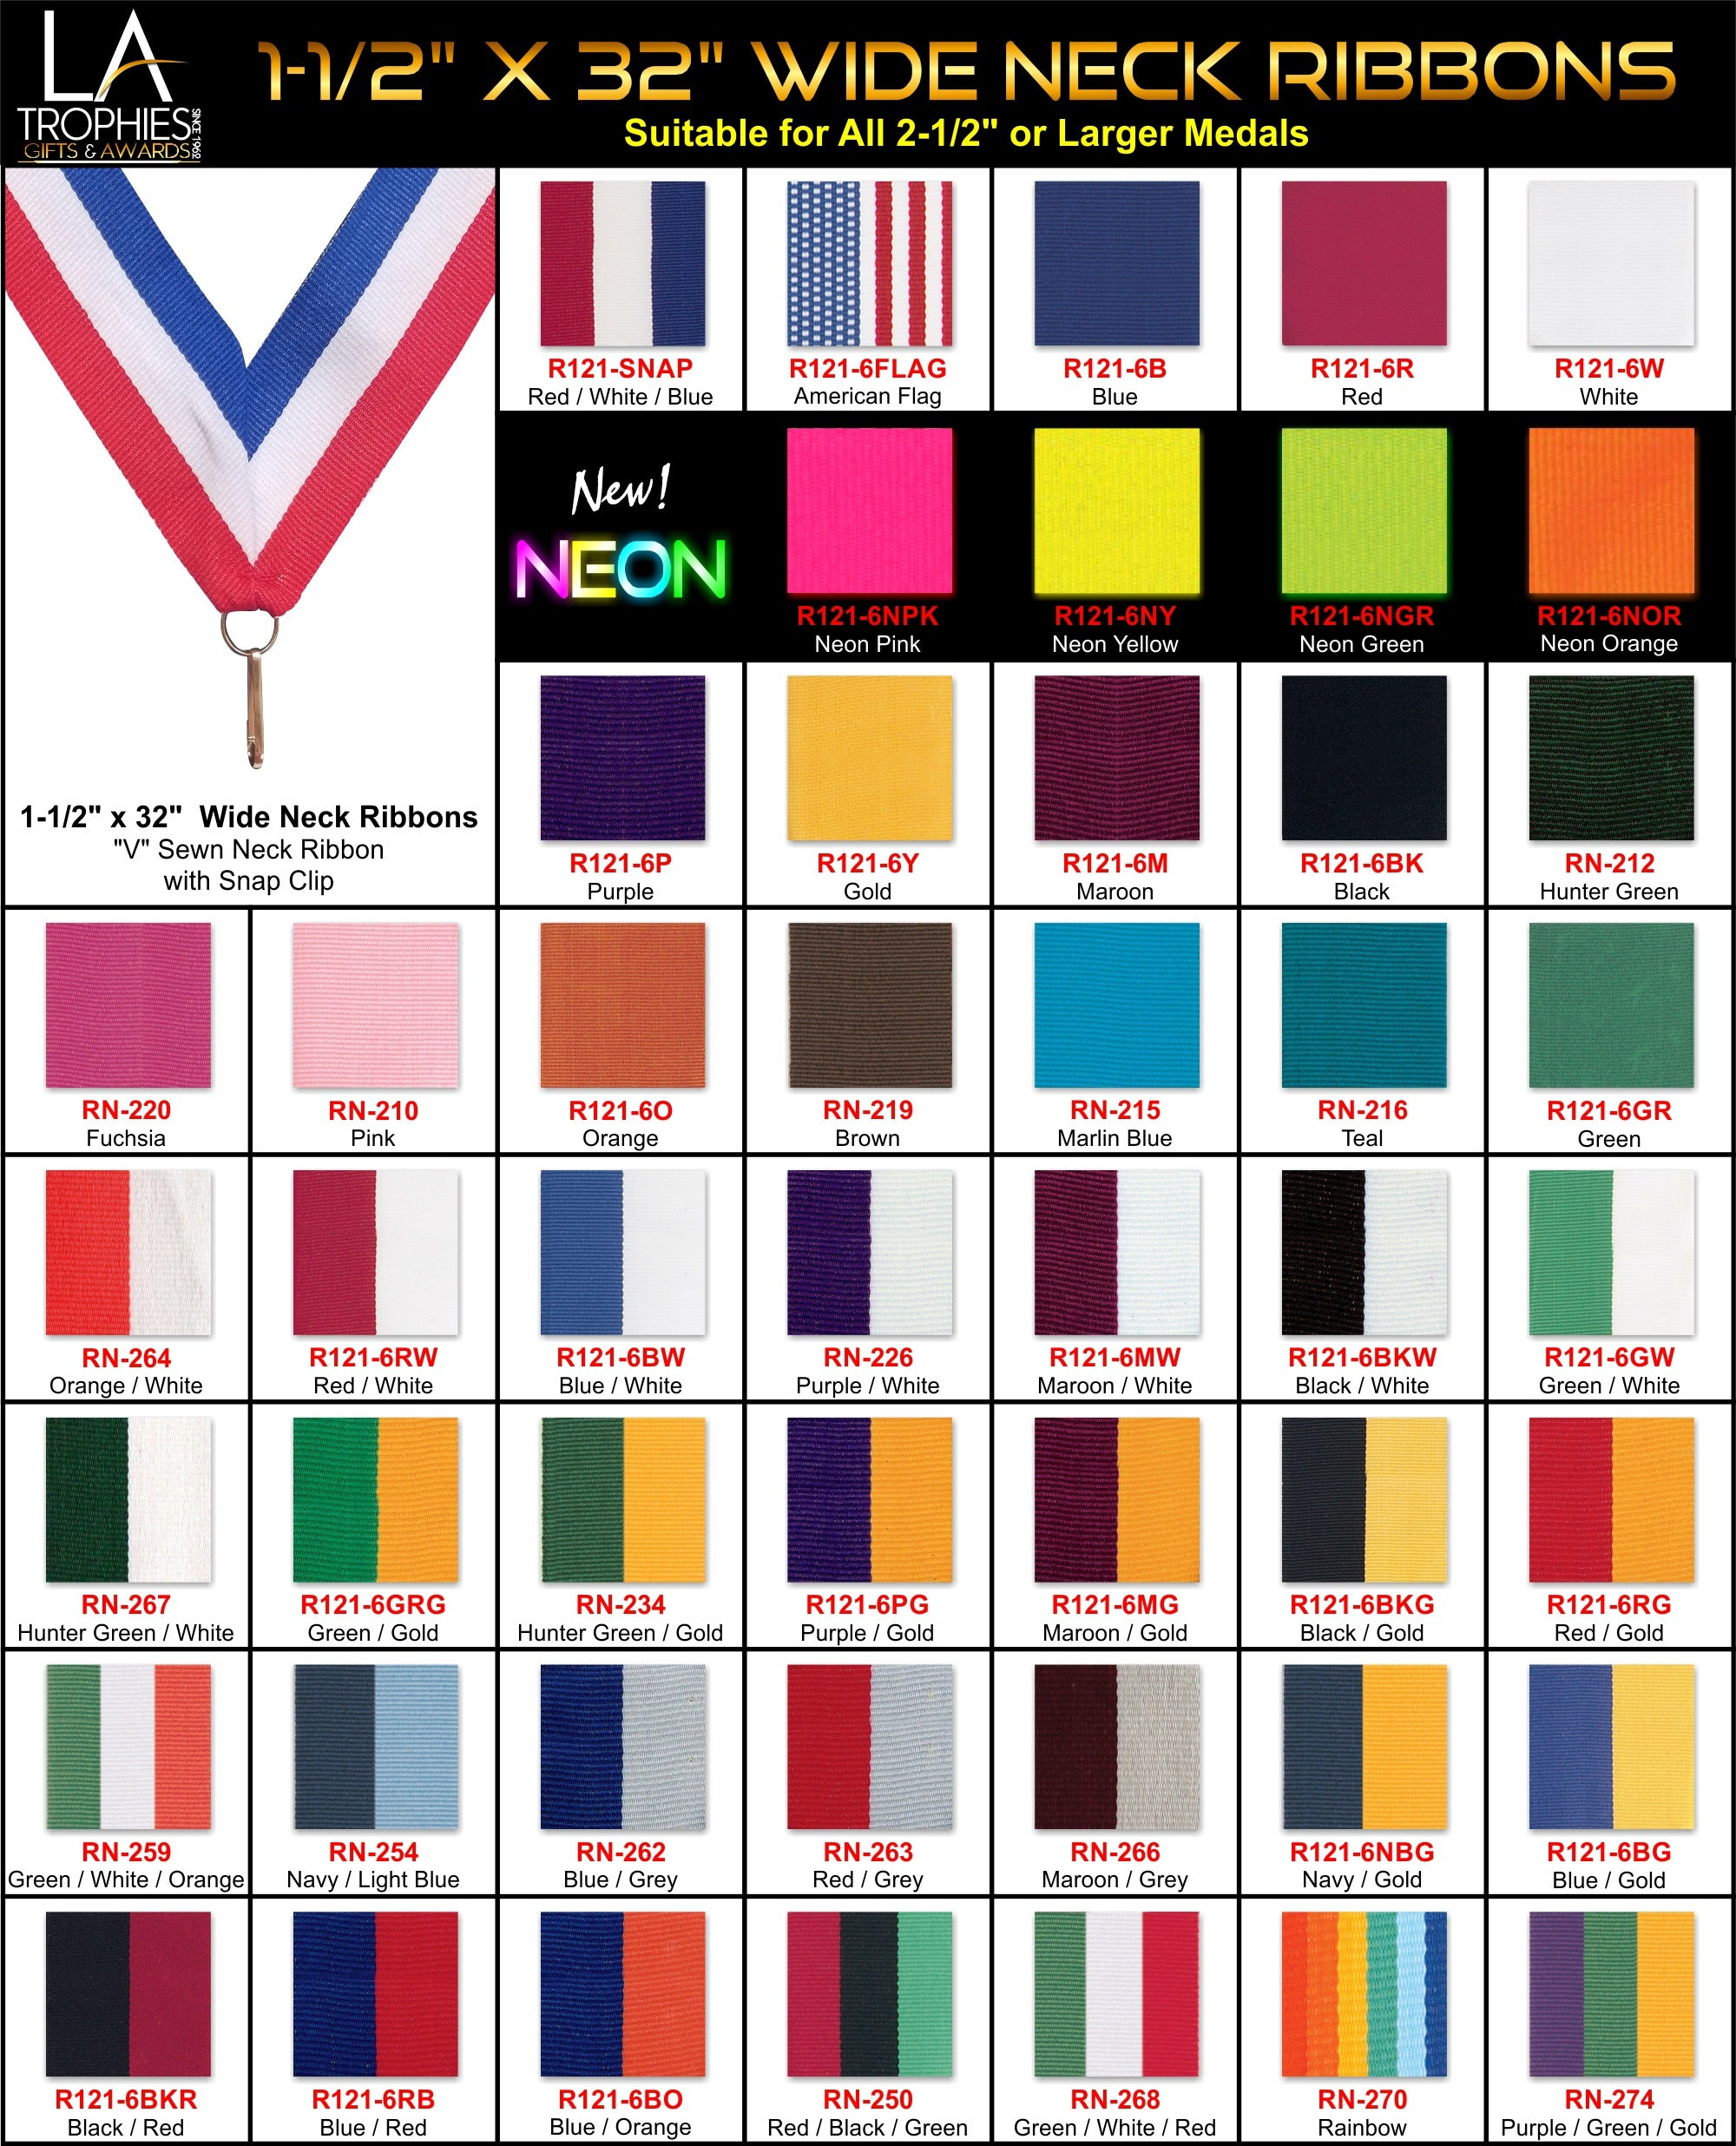 "1-1/2"" Wide Neck Ribbons for Medals 2-1/2"" and Larger"